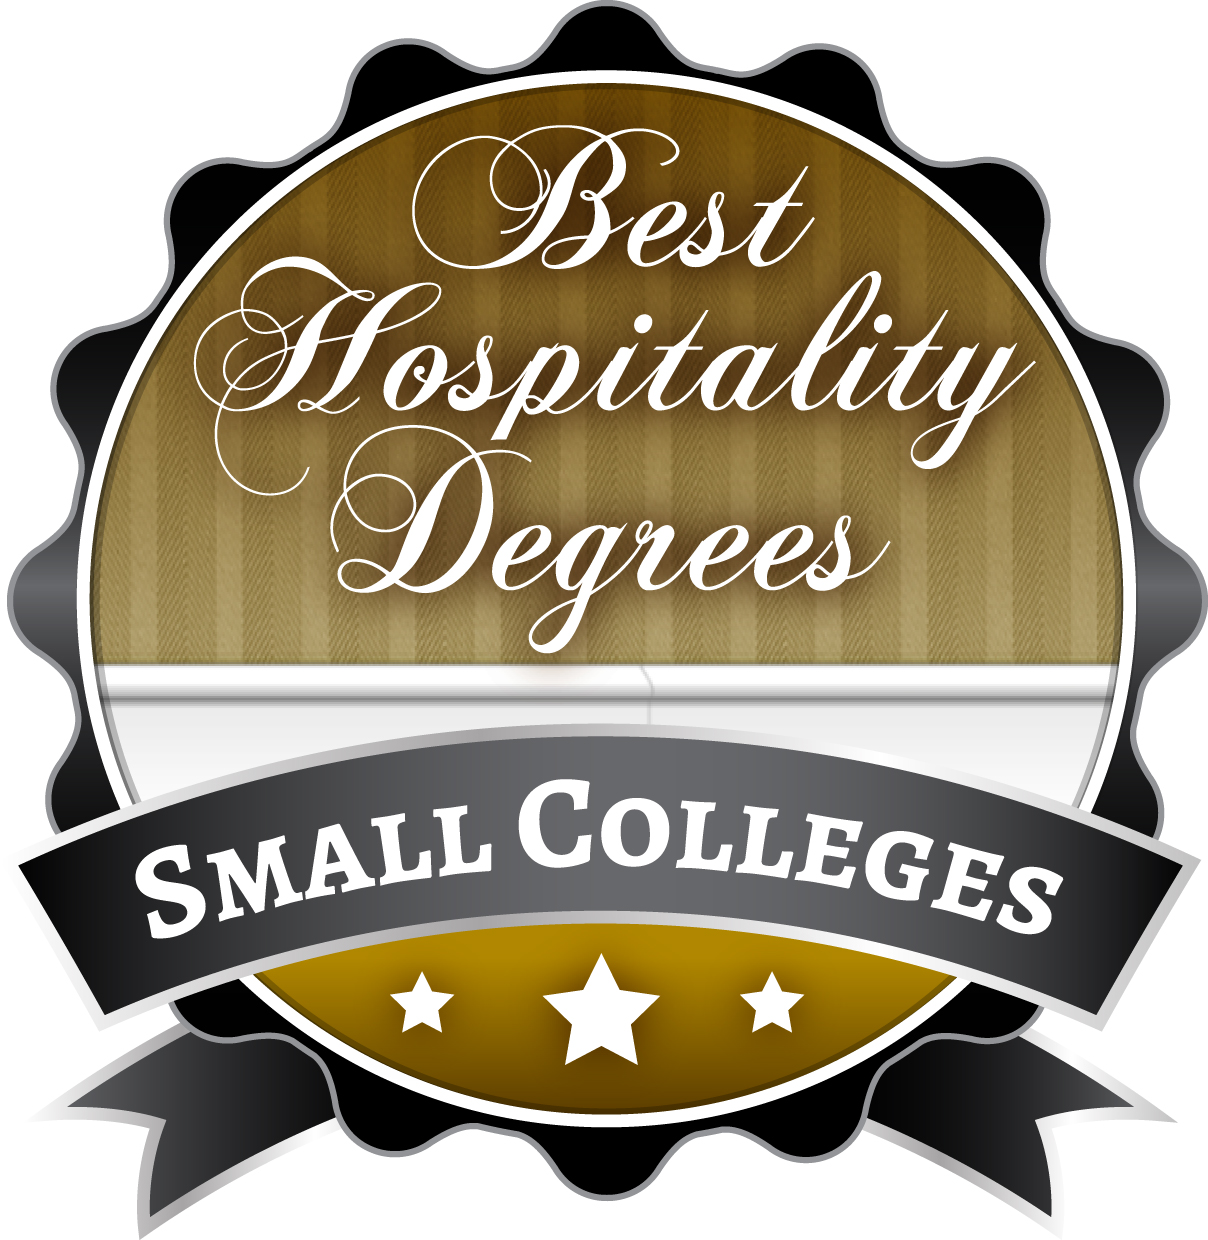 50 Most Affordable Small Colleges For Hospitality